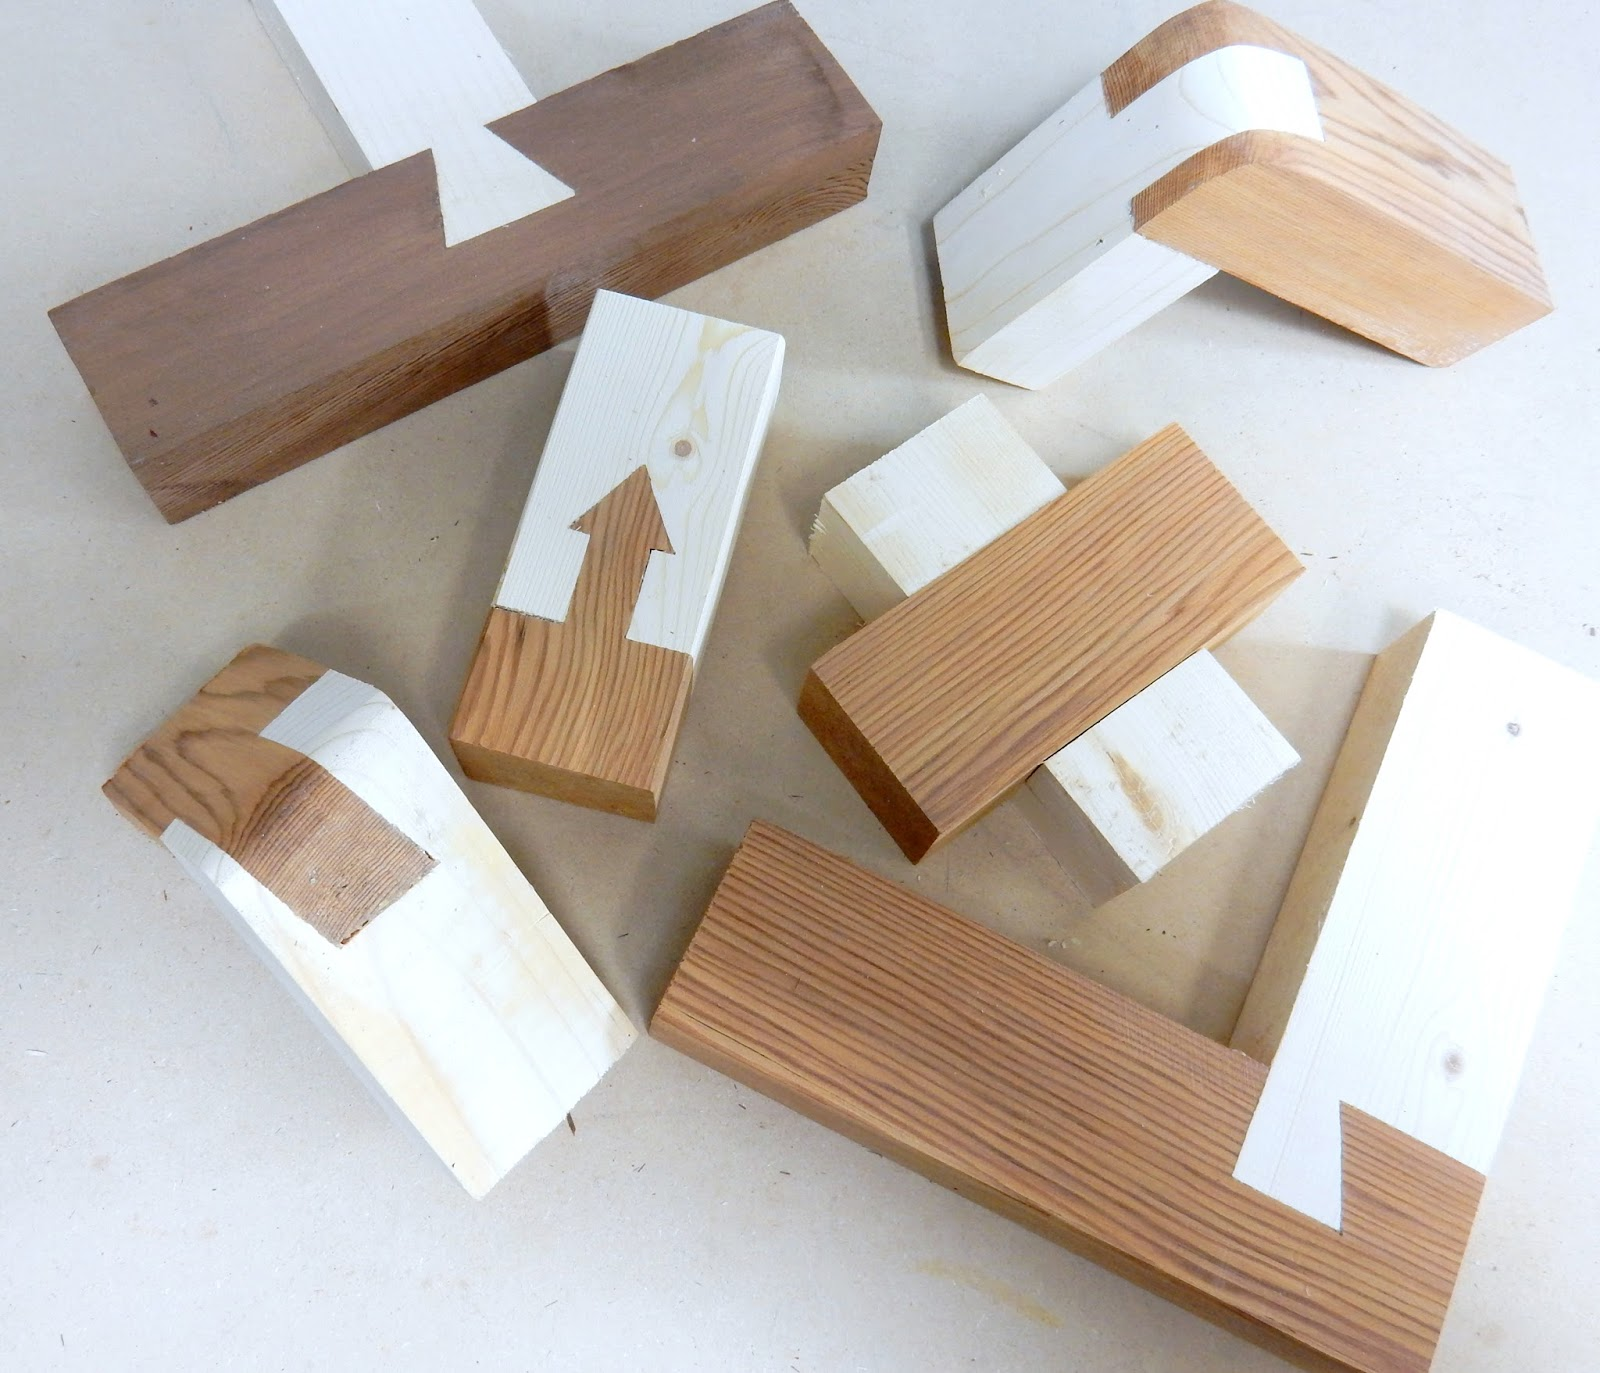 Jax Design 7 Wood Joints You Can Make With Your Bandsaw